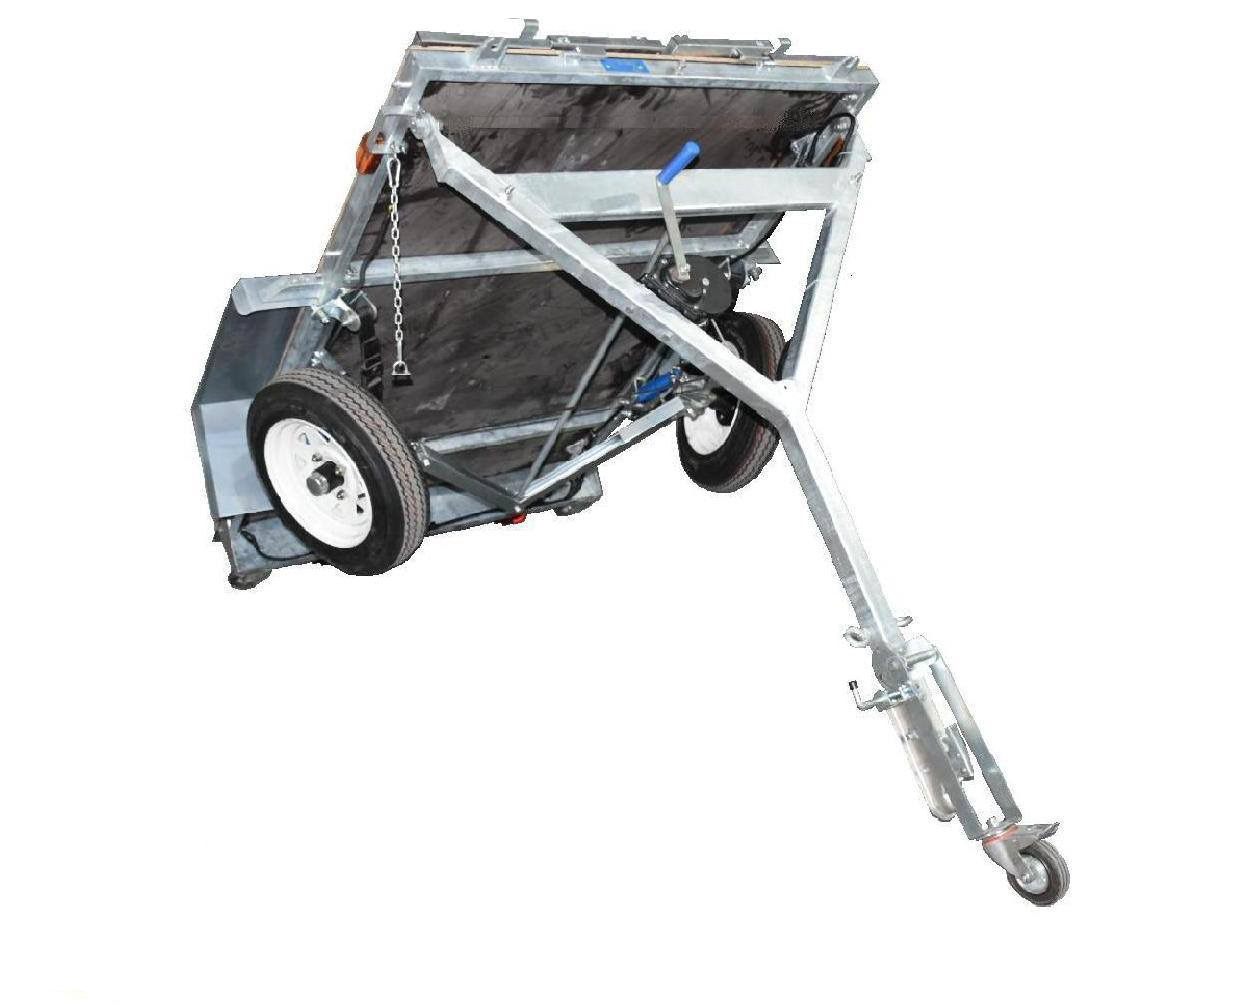 Snowaves Mechanical High-quality fold up trailer factory for one-way trips-1